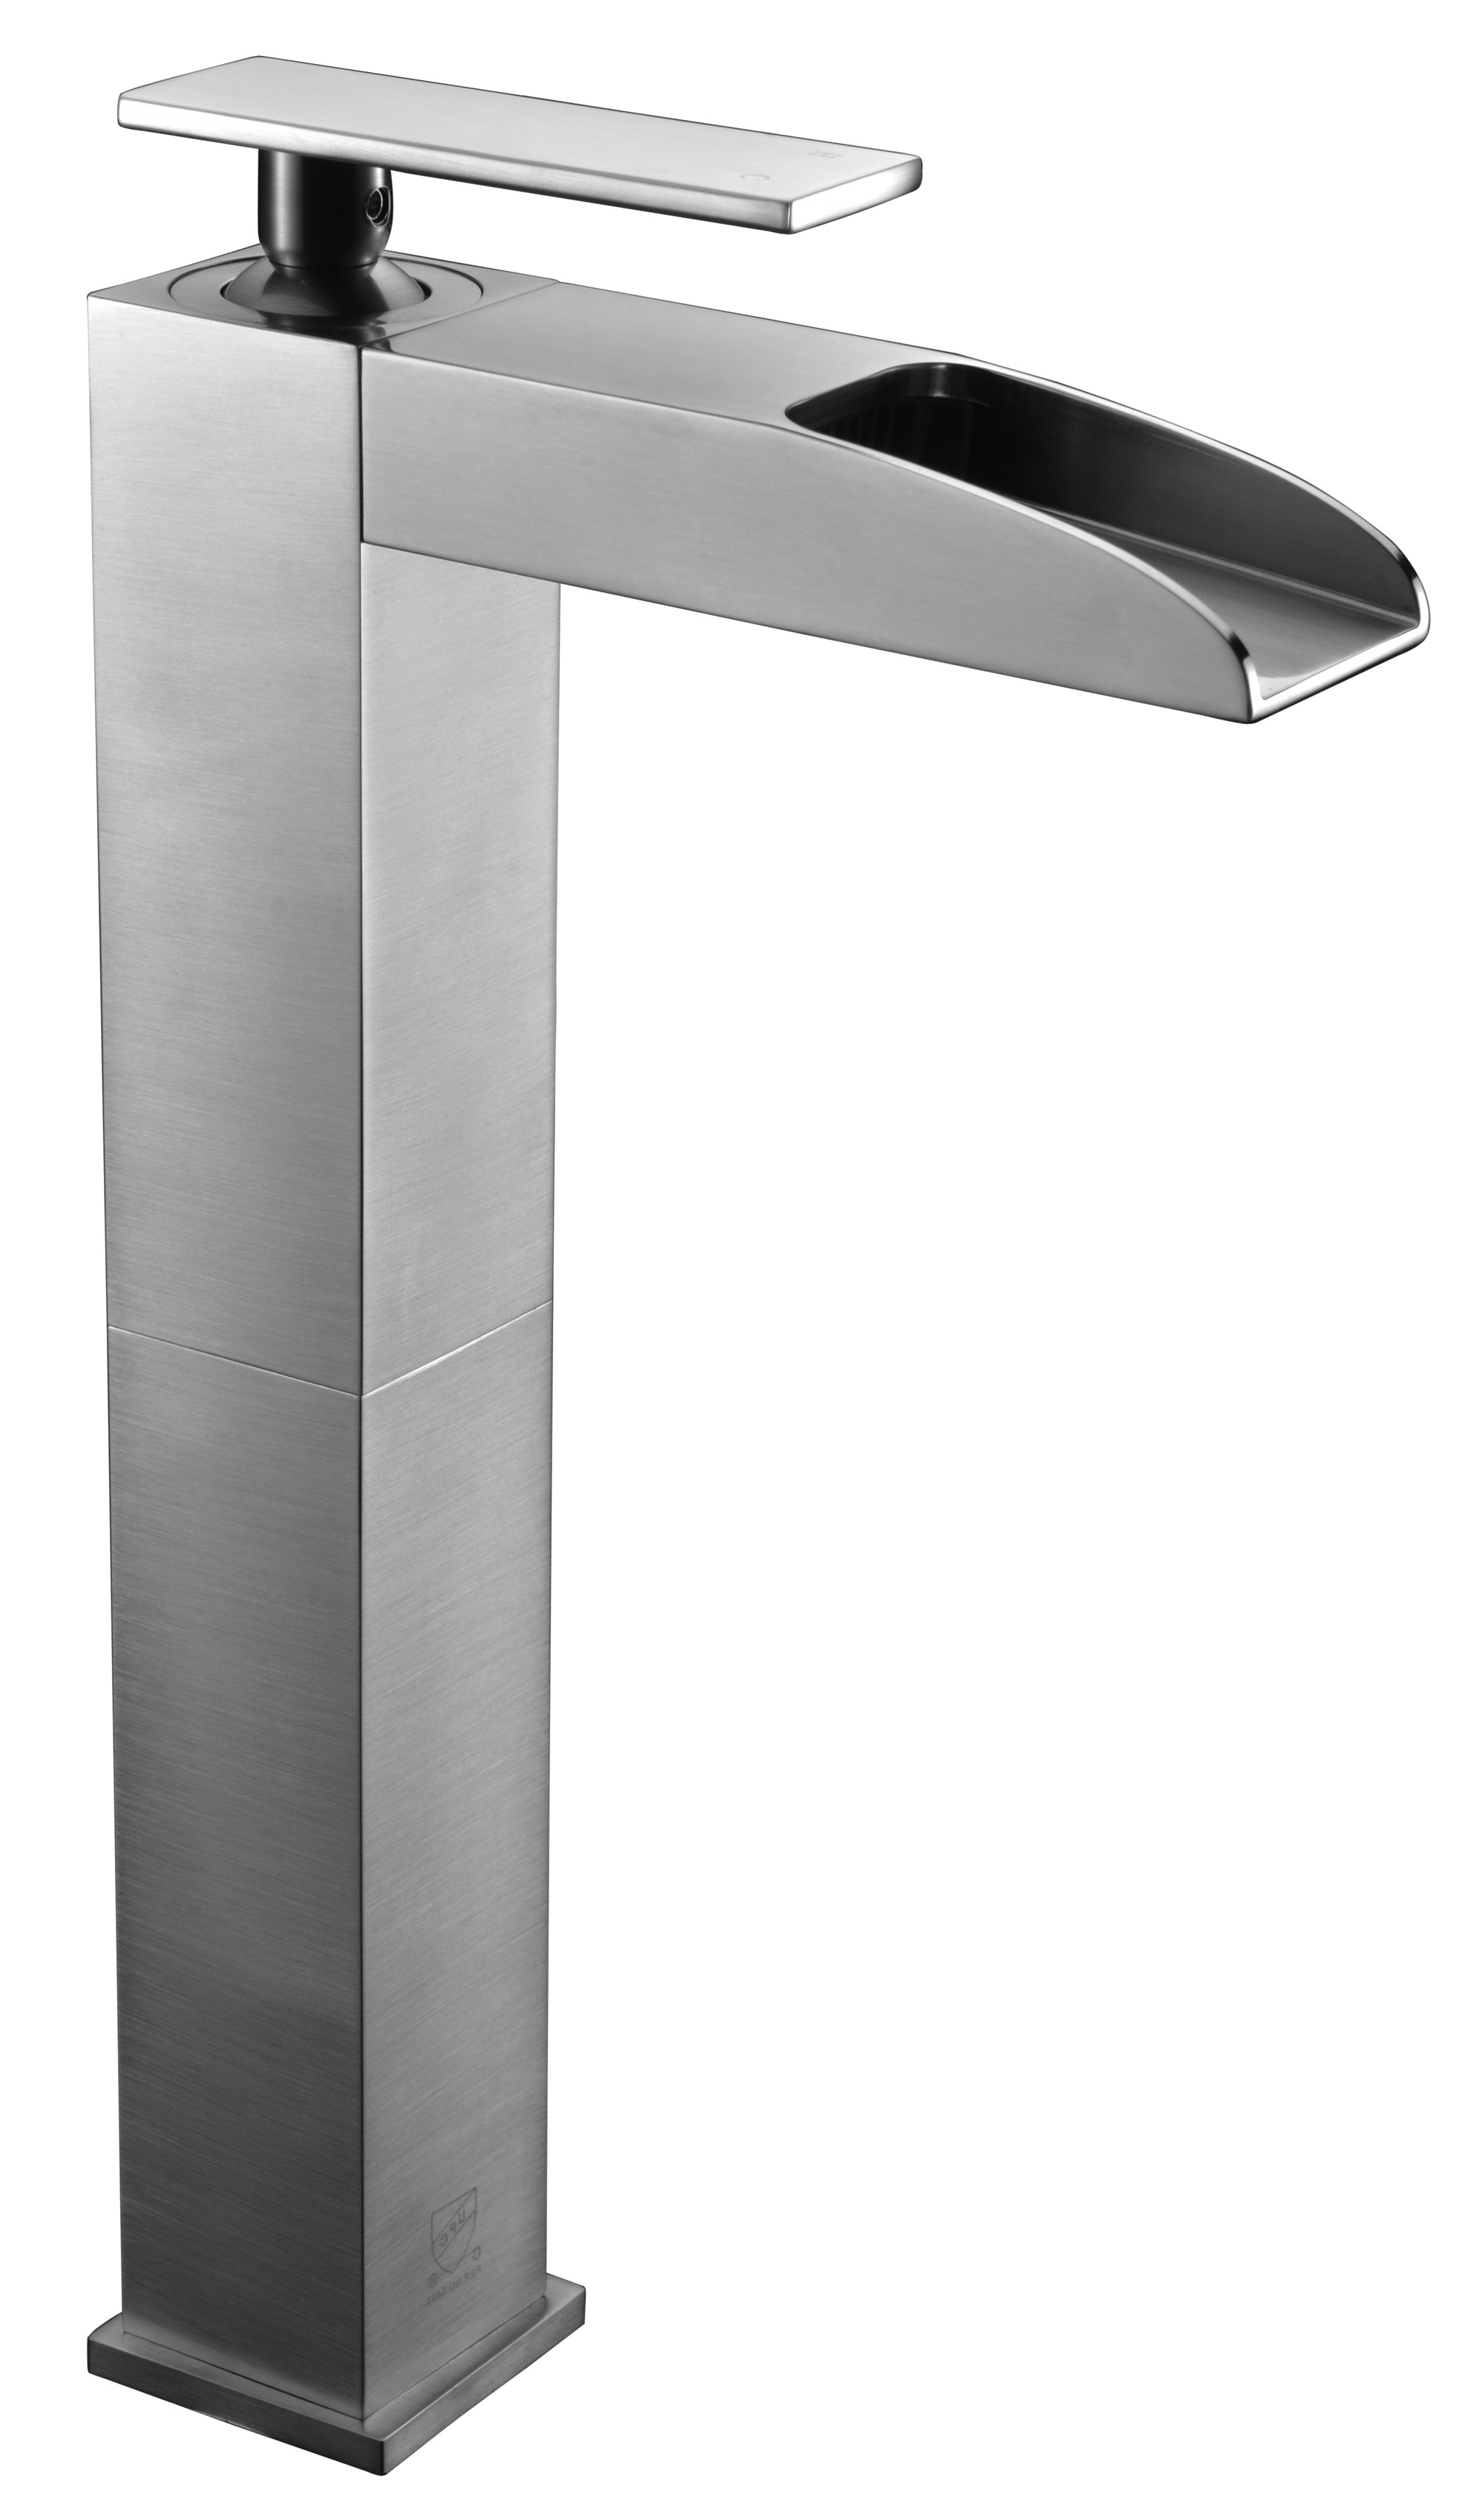 ALFI brand AB1597-BN Brushed Nickel Single Hole Tall Waterfall Bathroom Faucet